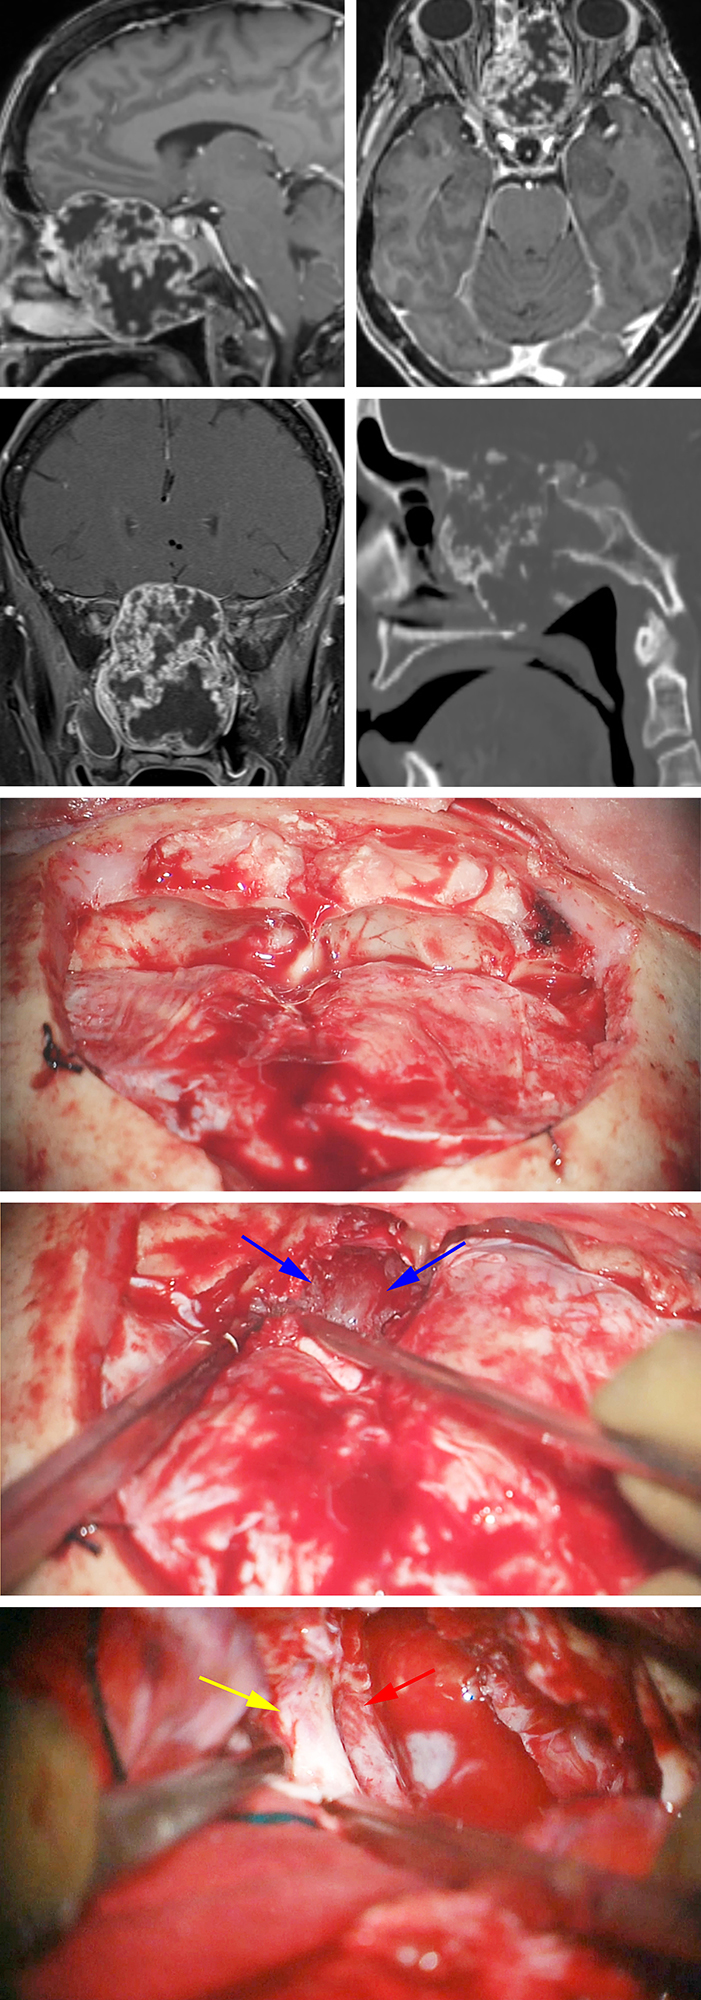 Figure 14: A large anterior skull base chondrosarcoma is evident. Note the erosive pattern of bone changes on the sagittal CT scan (upper images). This tumor was resected via combined bifrontal (middle photos) and endoscopic transnasal routes. The tumor eroding through the cribriform plate is marked with blue arrows (second intraoperative photo). Bilateral optic nerves (left nerve covered by its dura, yellow arrow) and ICAs (red arrow) were exposed via the bifrontal route at the end of the resection (lower photo).